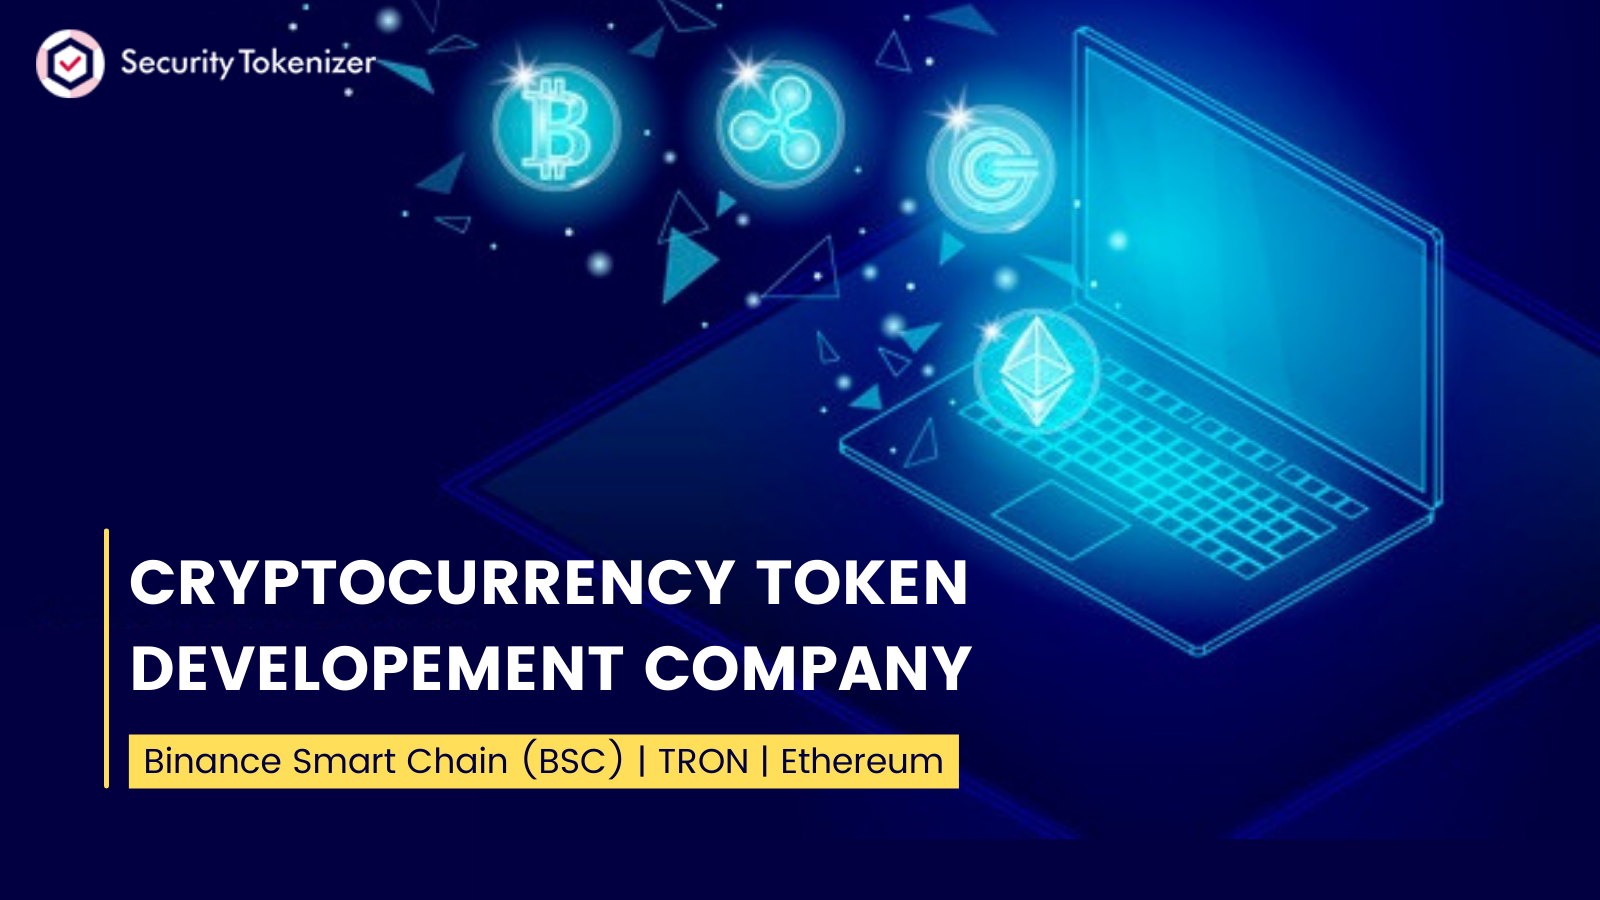 Cryptocurrency and Token Development Company